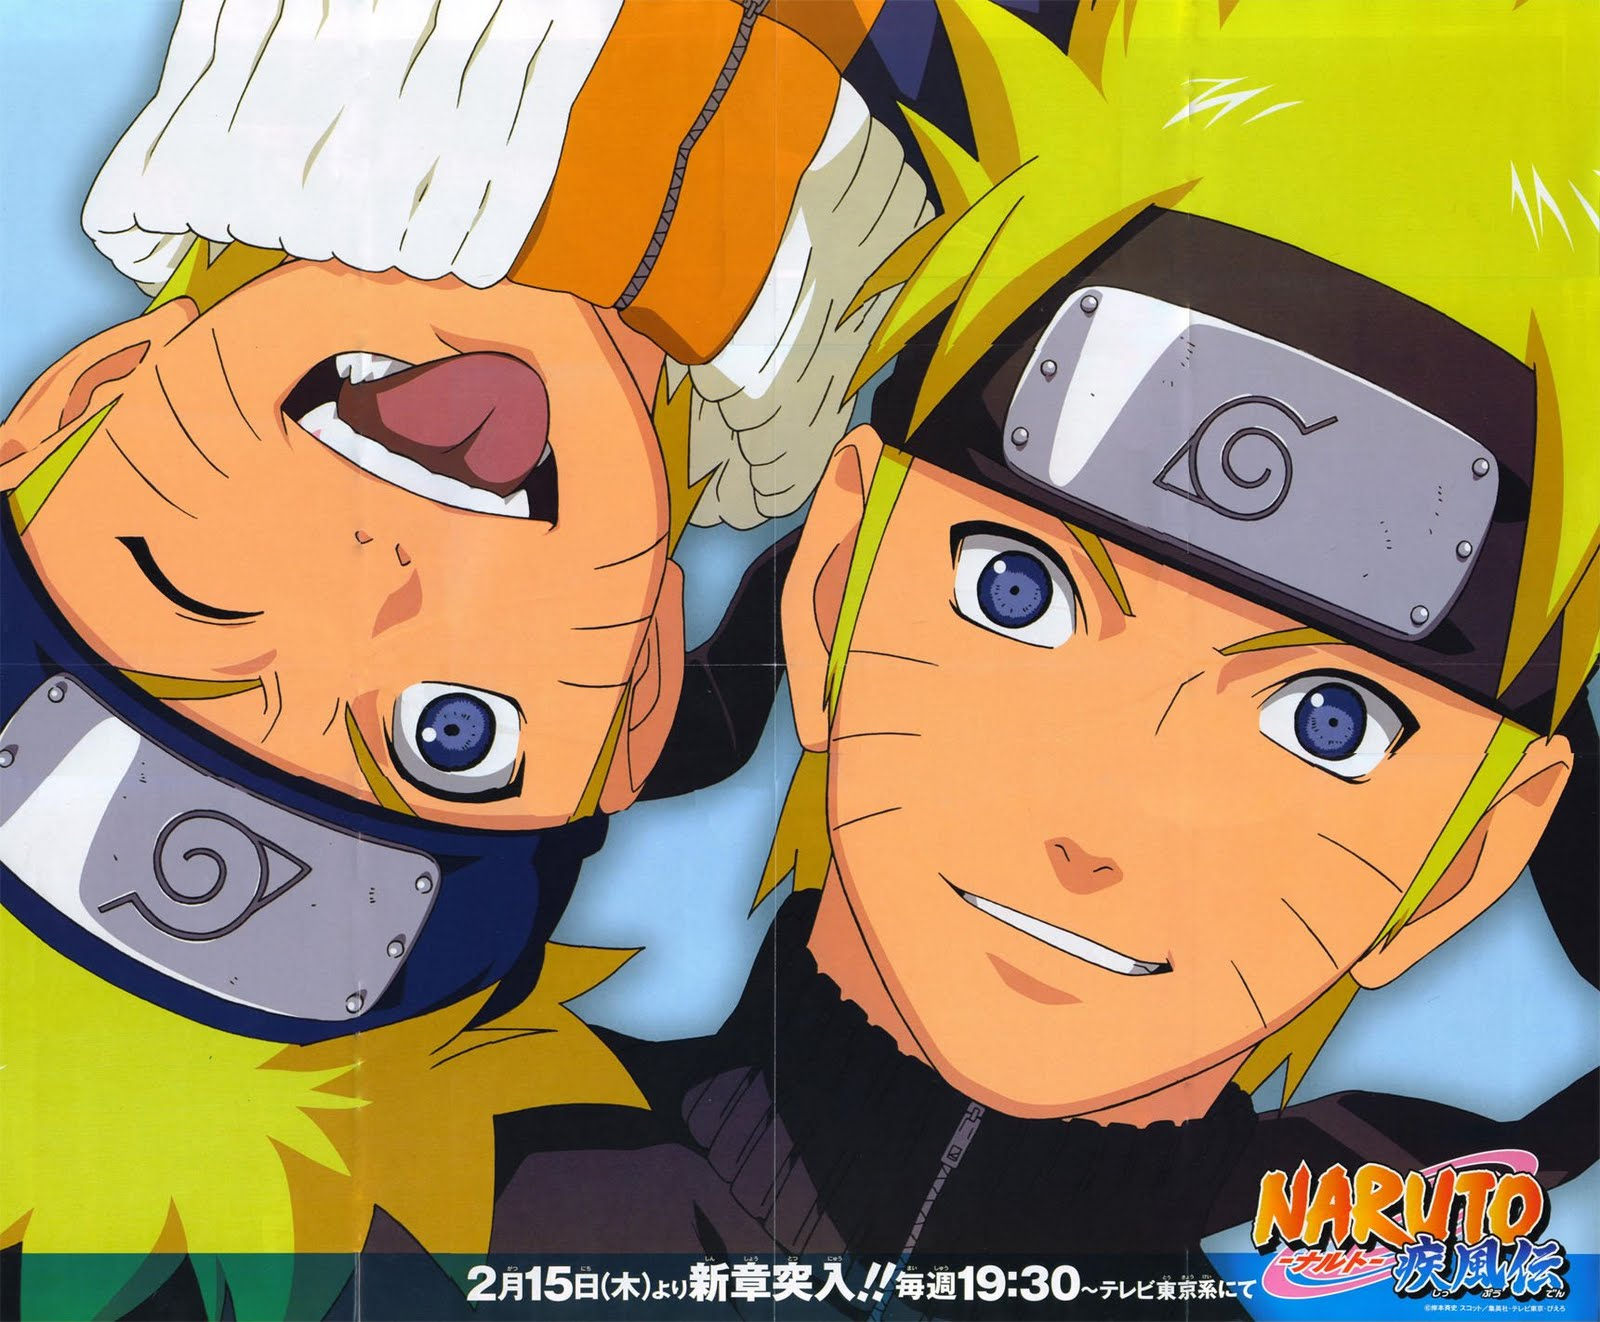 Naruto and Naruto Shippuuden